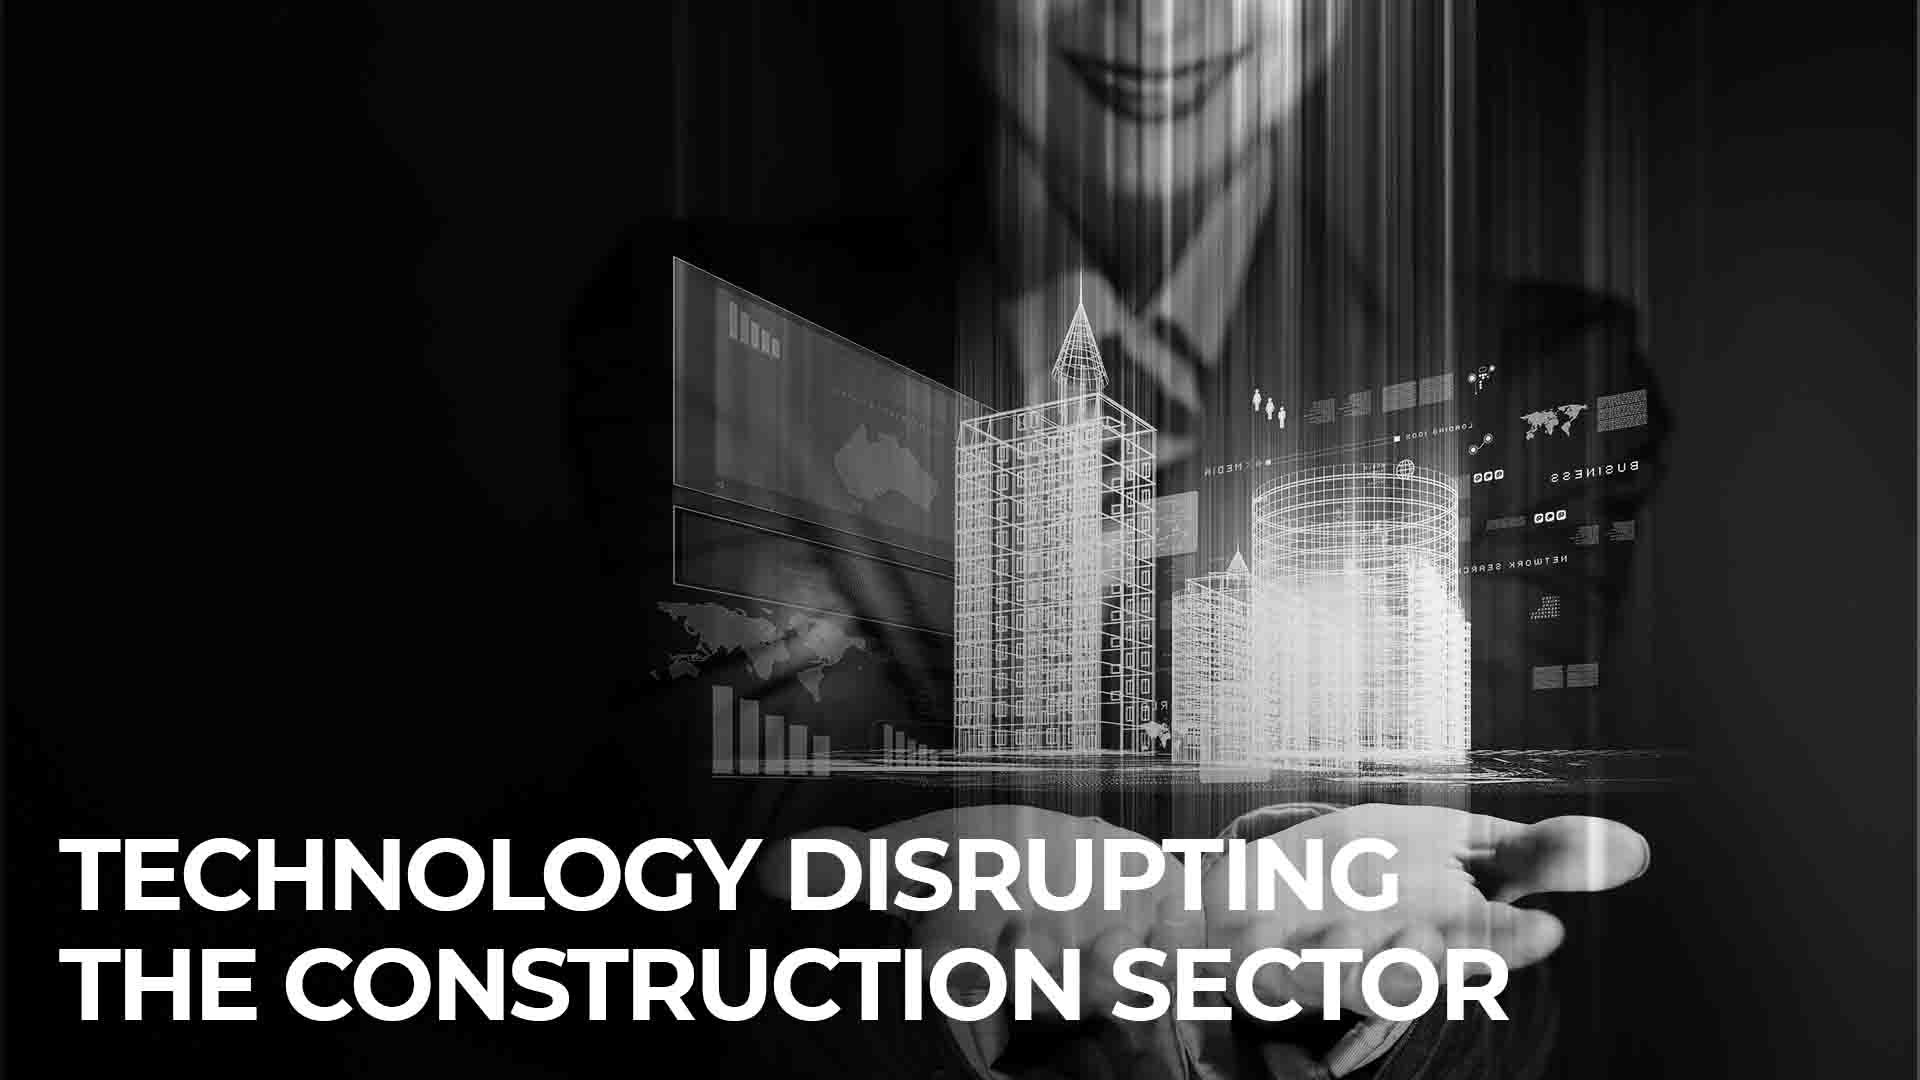 Technology Disrupting the Construction Sector